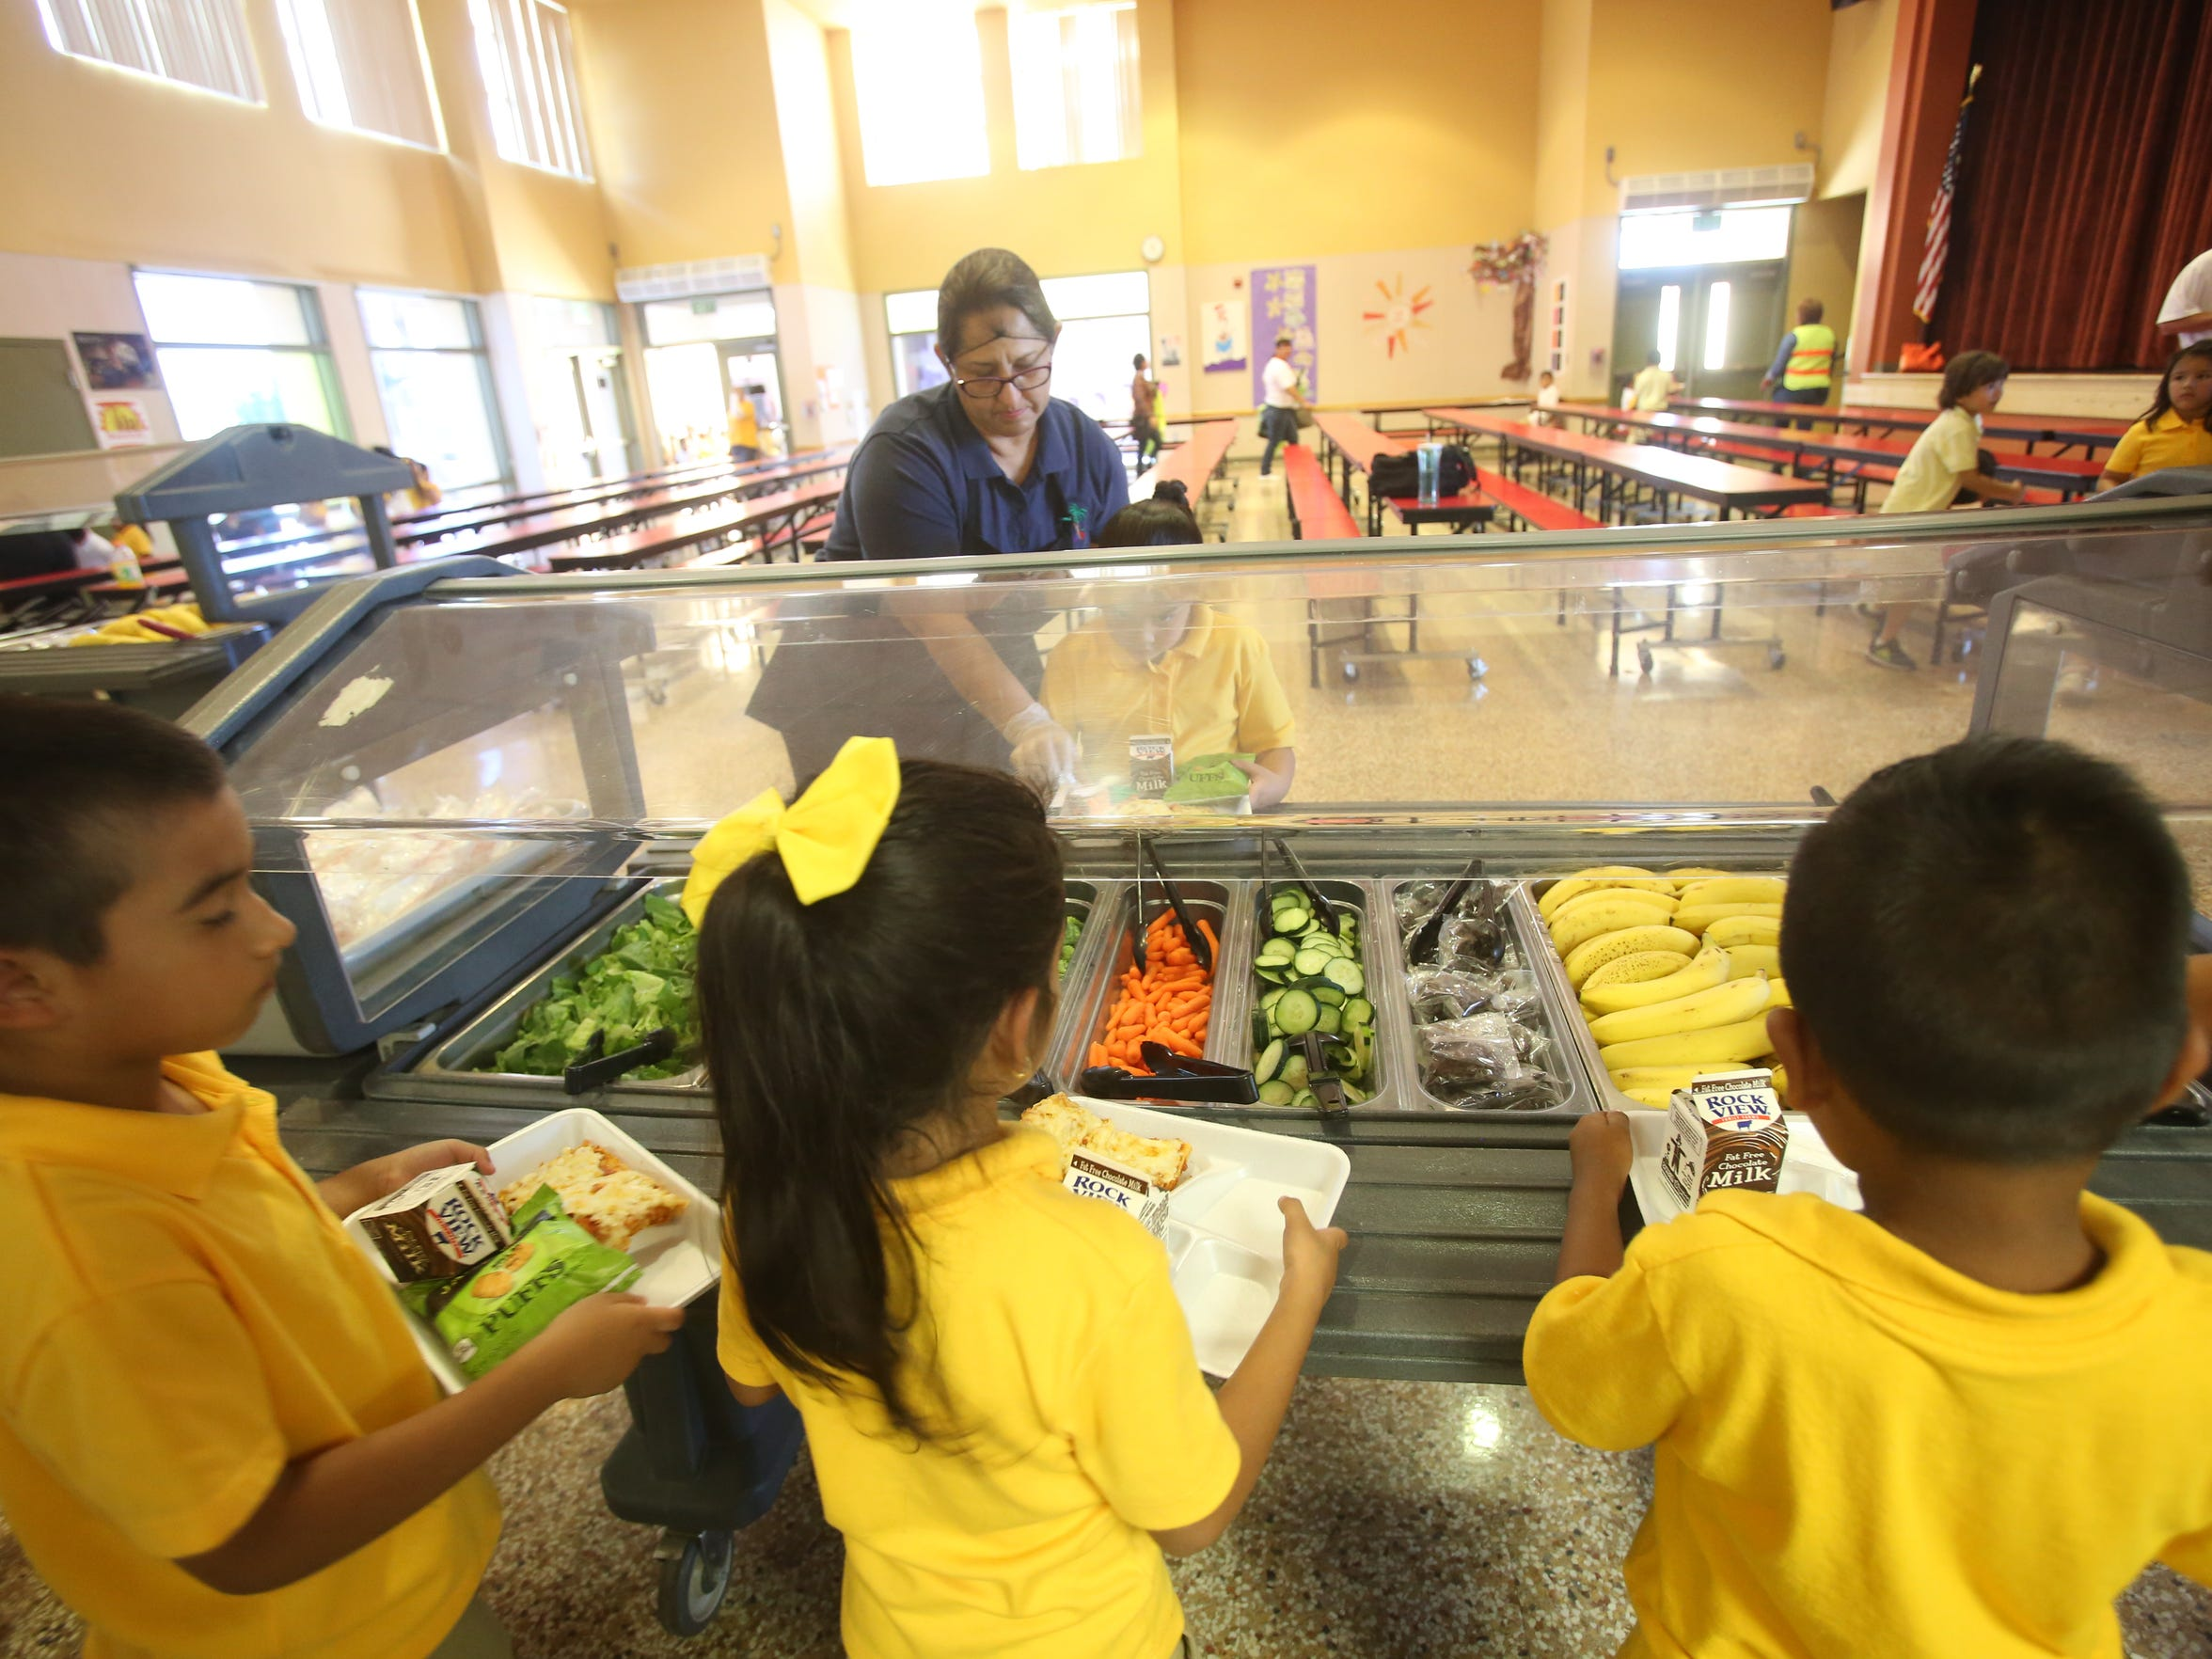 Valle Del Sol Elementary School students serve themselves vegetables  in the city of Coachella.